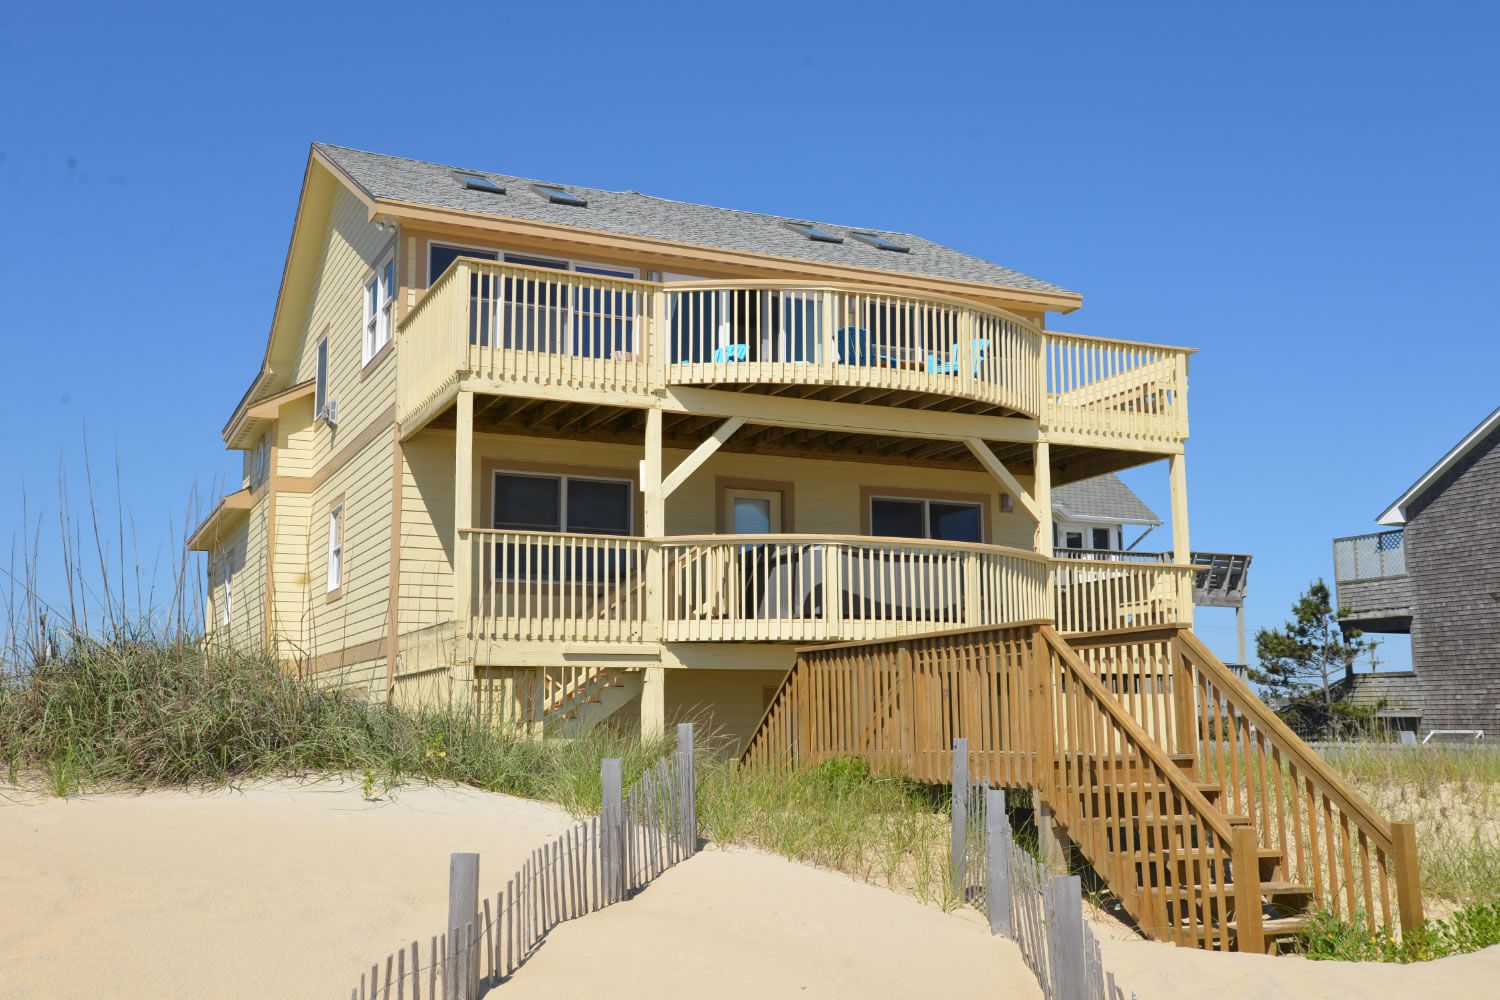 outerbanks hero vacation banks outer ocracoke rentals com cottages